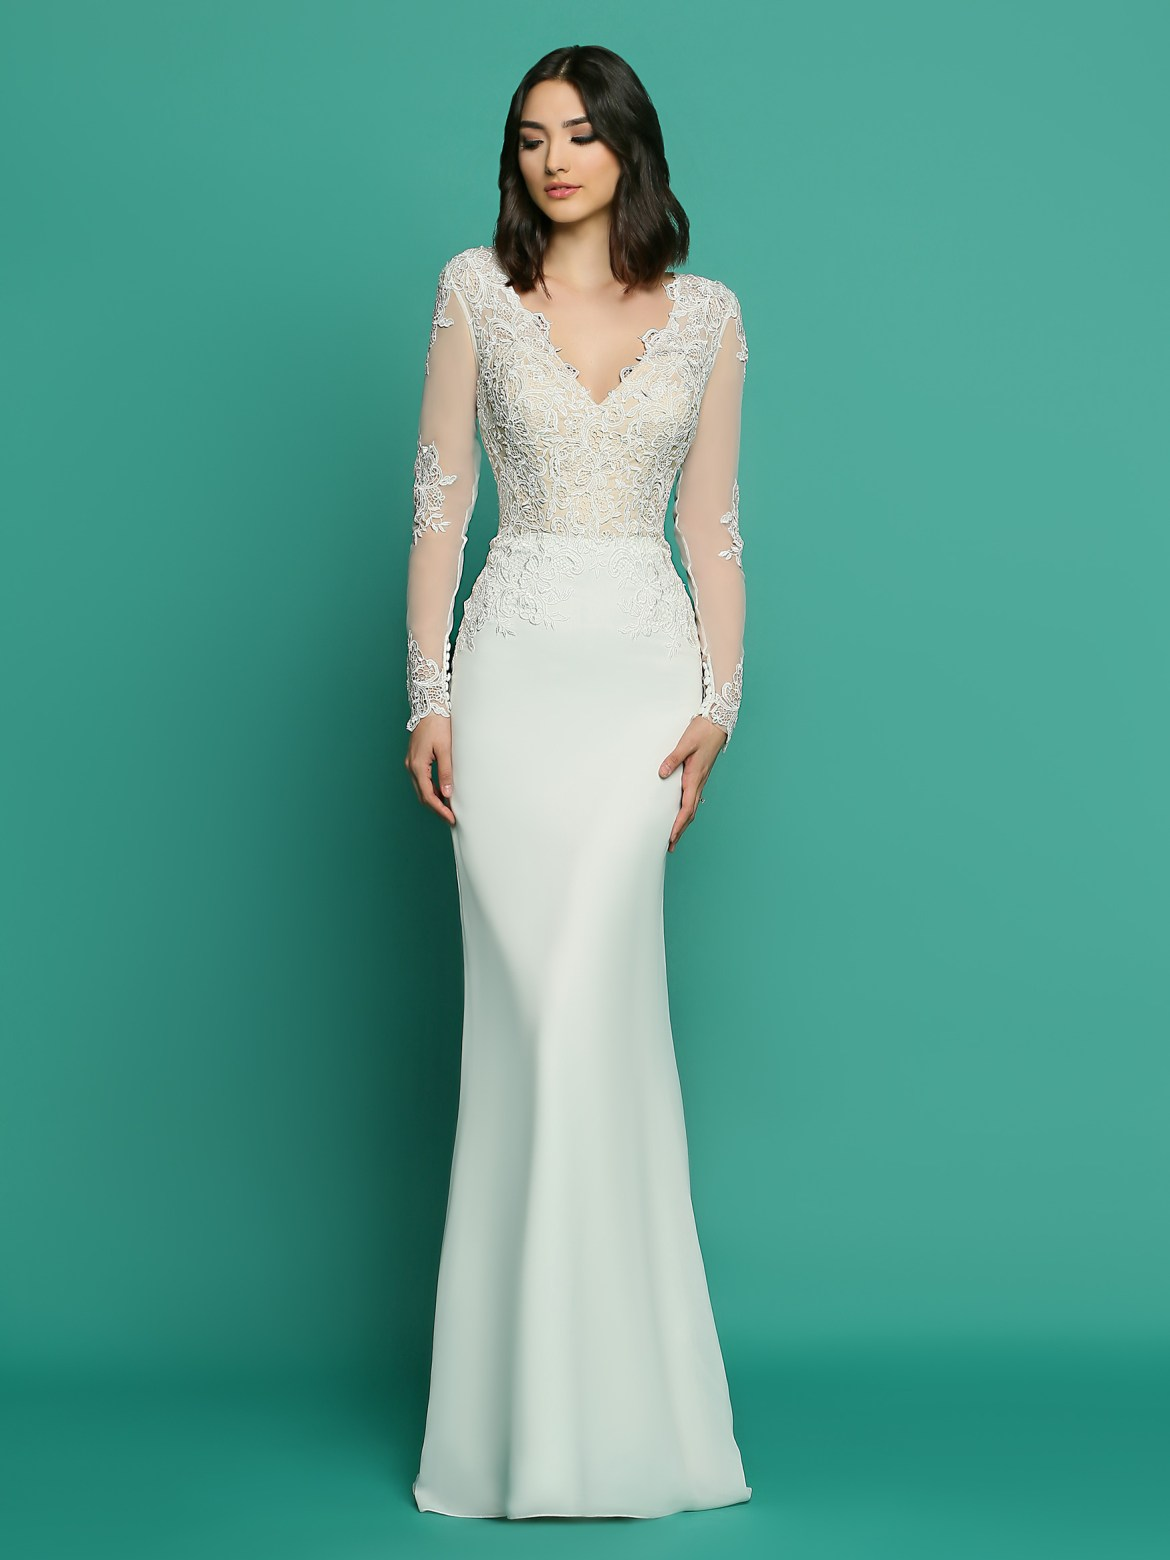 b3f672dbef27 DaVinci Informal Style #F7057 Chiffon & Lace A-Line Sheath, V-Neck Lace  Bodice, Long Sheer Lace Applique Sleeves, Deep Open Scoop Back, Sweep Train